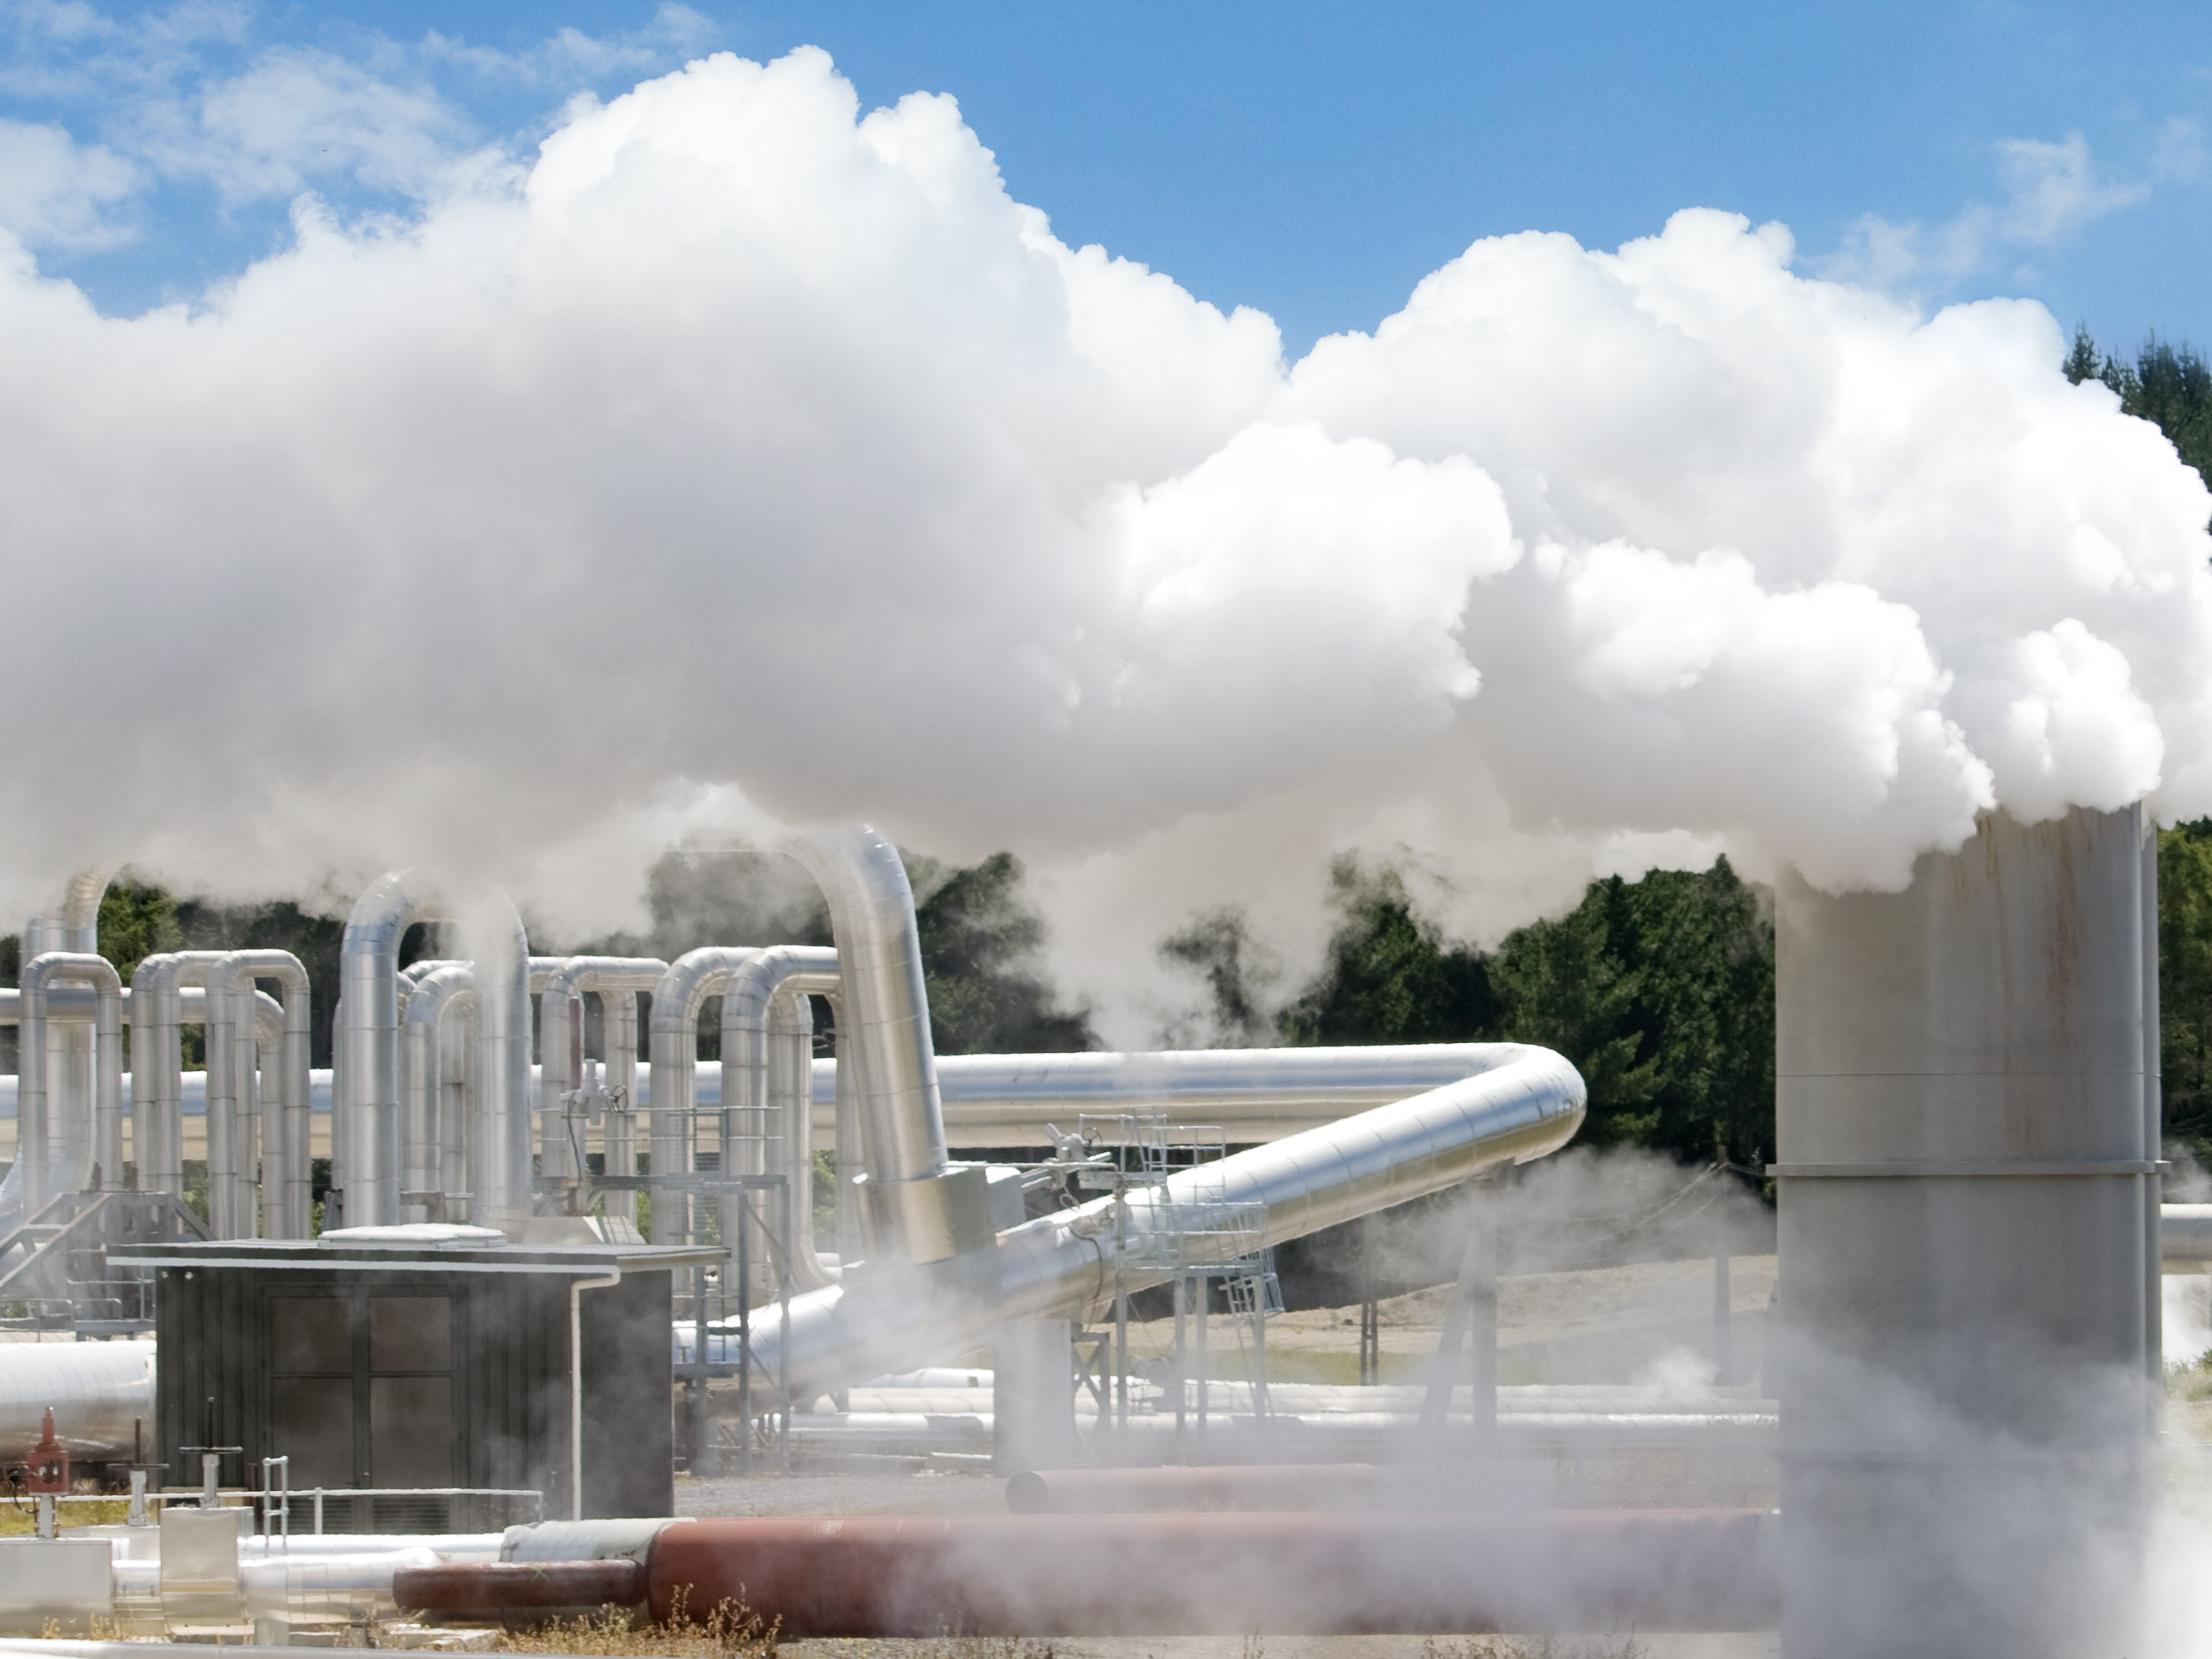 Geothermal enery plant, clouds of steam from chimeney